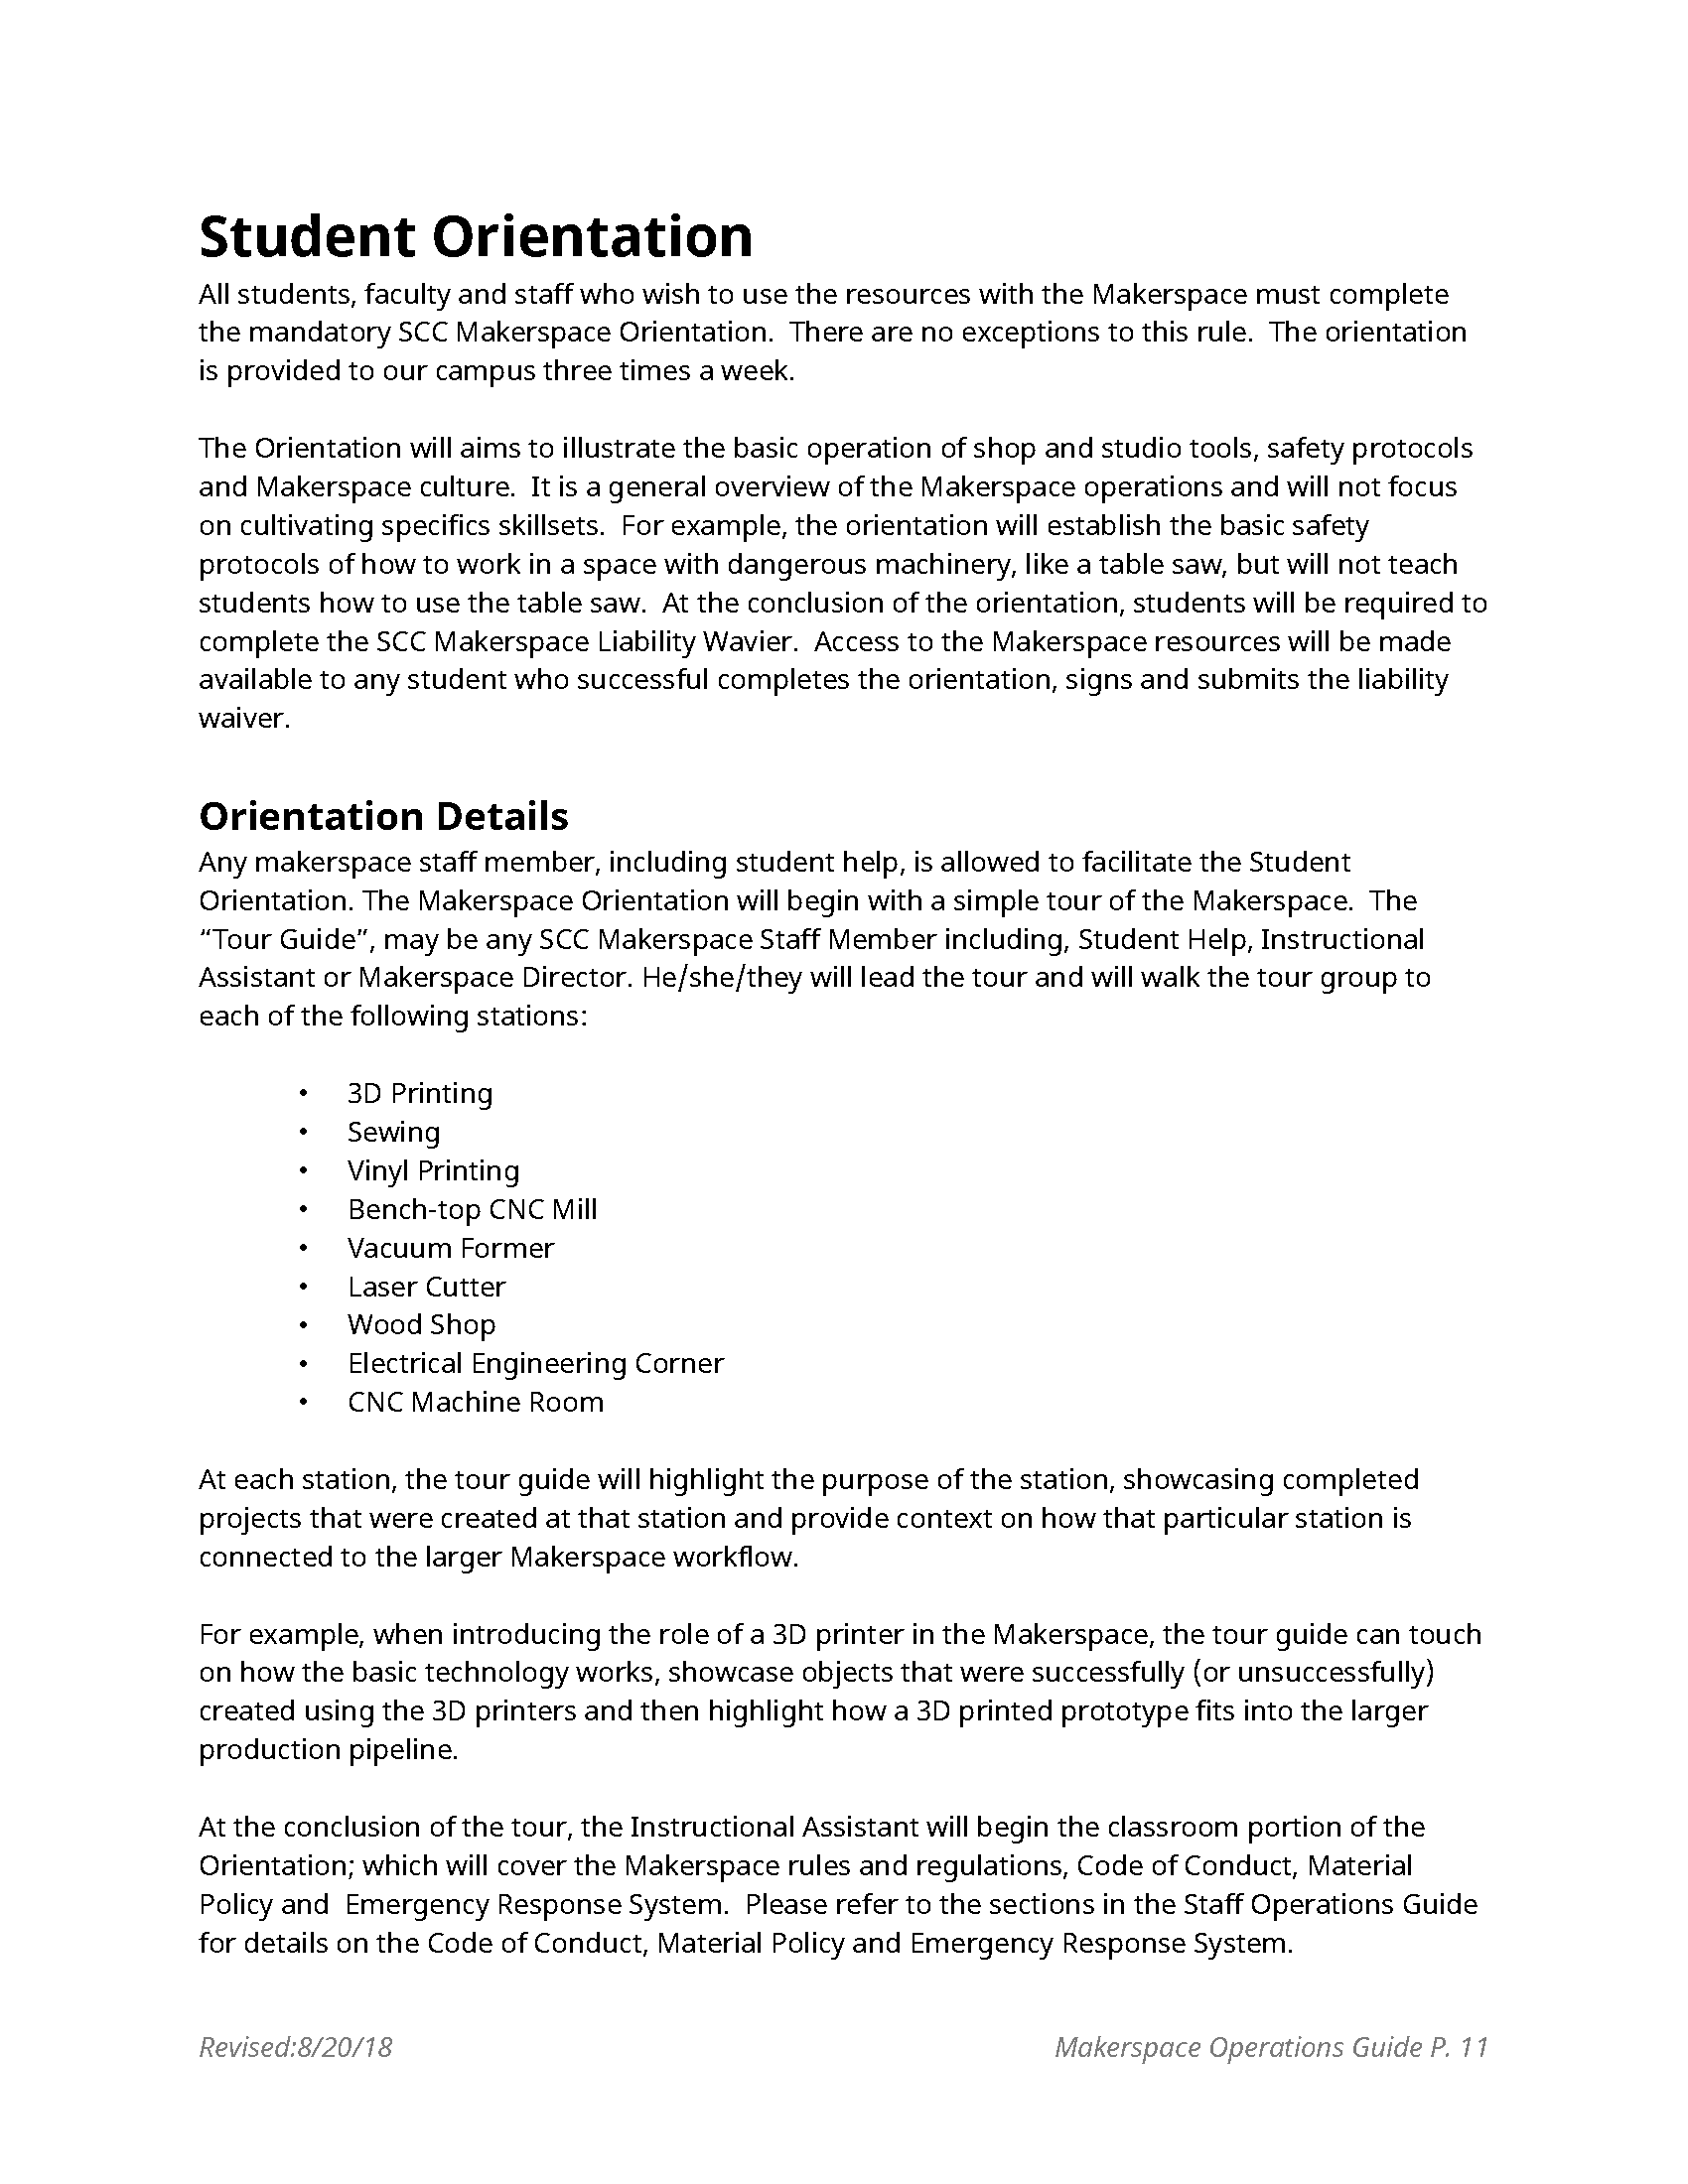 ms_ops_manual_8-20_Page_11.png